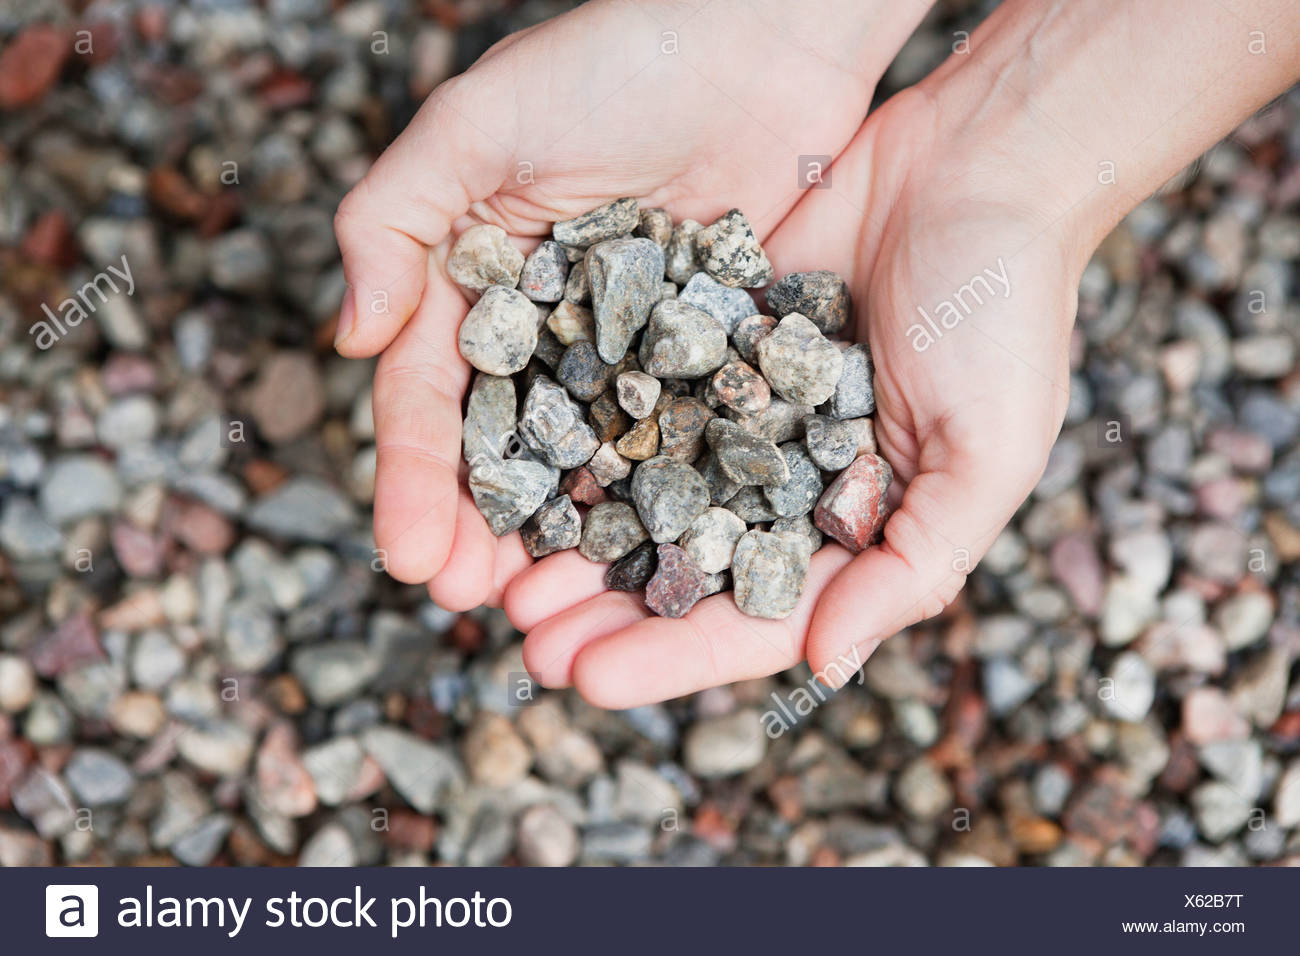 Close-up of a person's hand holding a stones - Stock Image